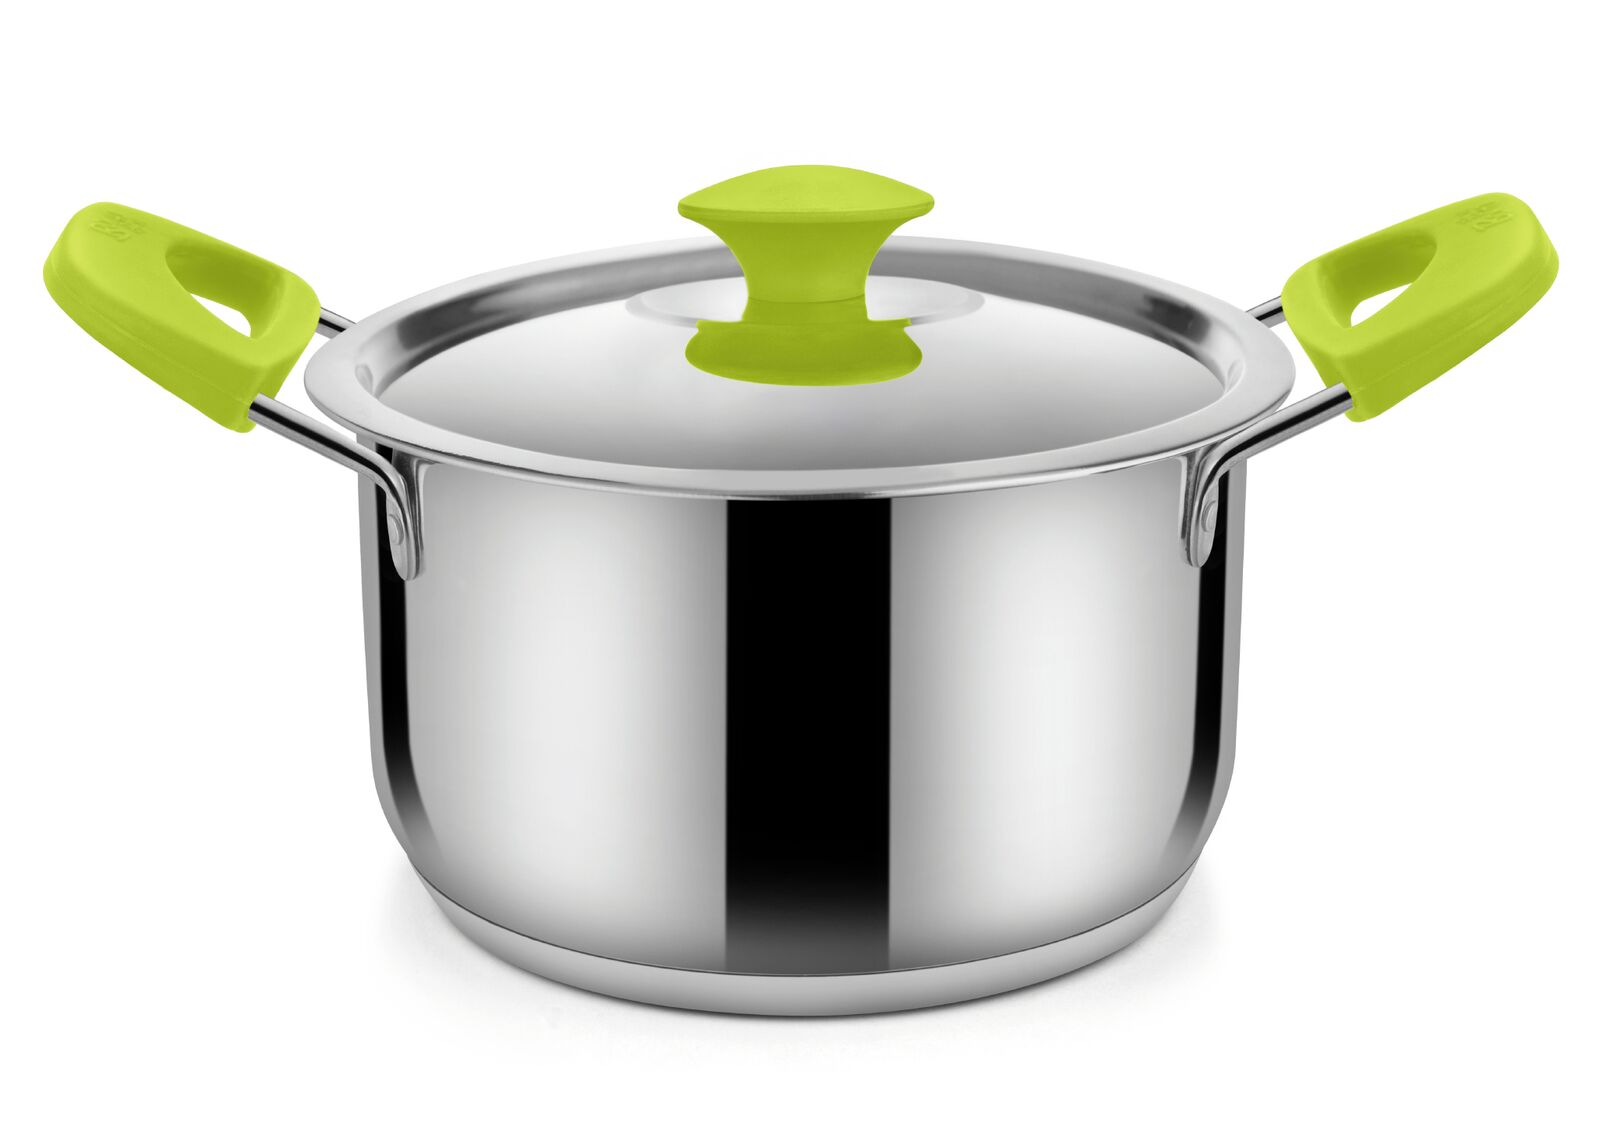 Bonita Dutch Oven Encap 2000 Ml Stainless Steel With Silicone Sauce Pans in Green Colour by Bonita